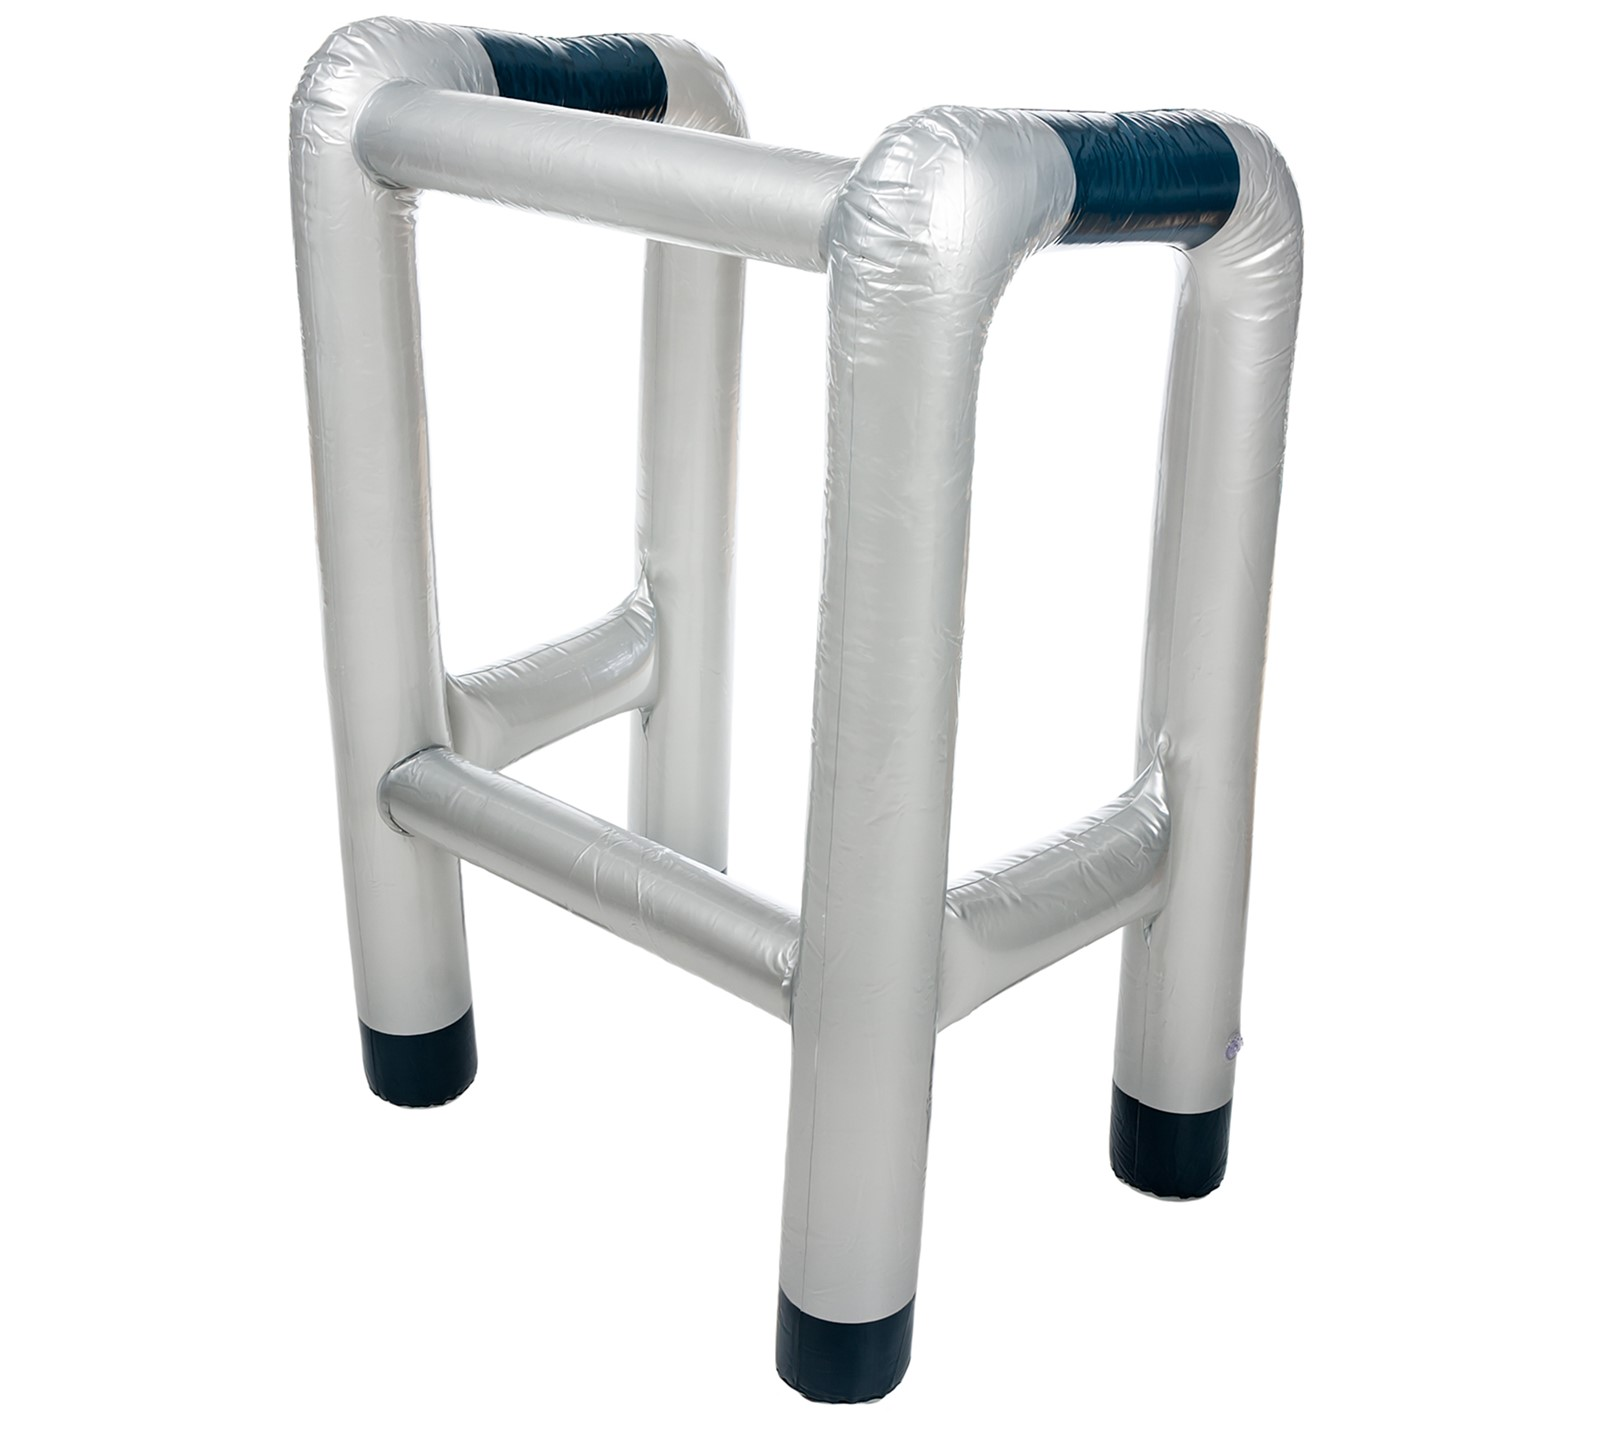 INFLATABLE BLOW UP ZIMMER FRAME AND OR WALKING STICK NOVELTY PRESENT ...